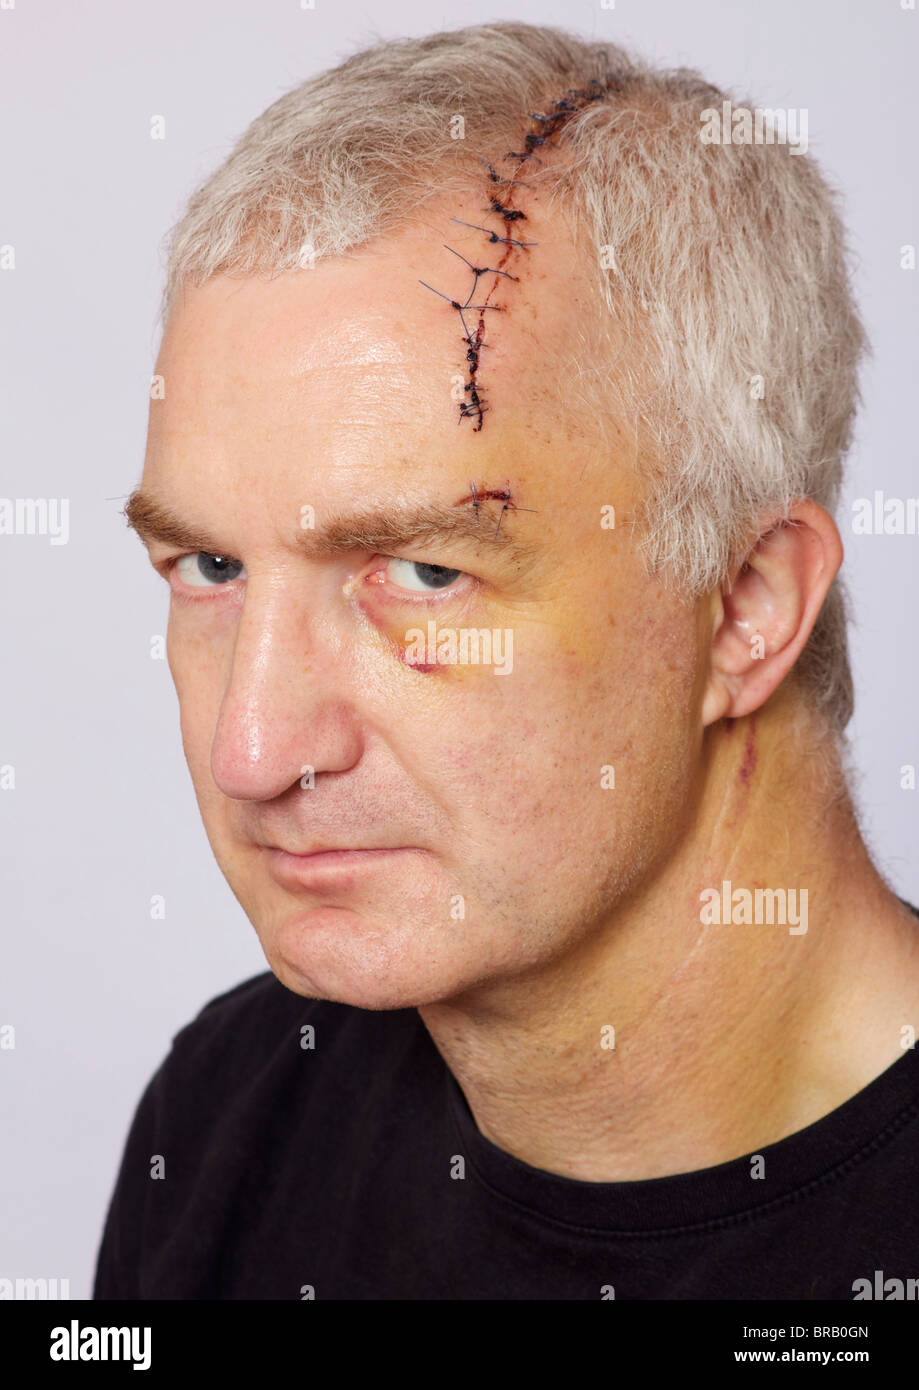 man with long head wound and stitches stock photo 31589397 alamy